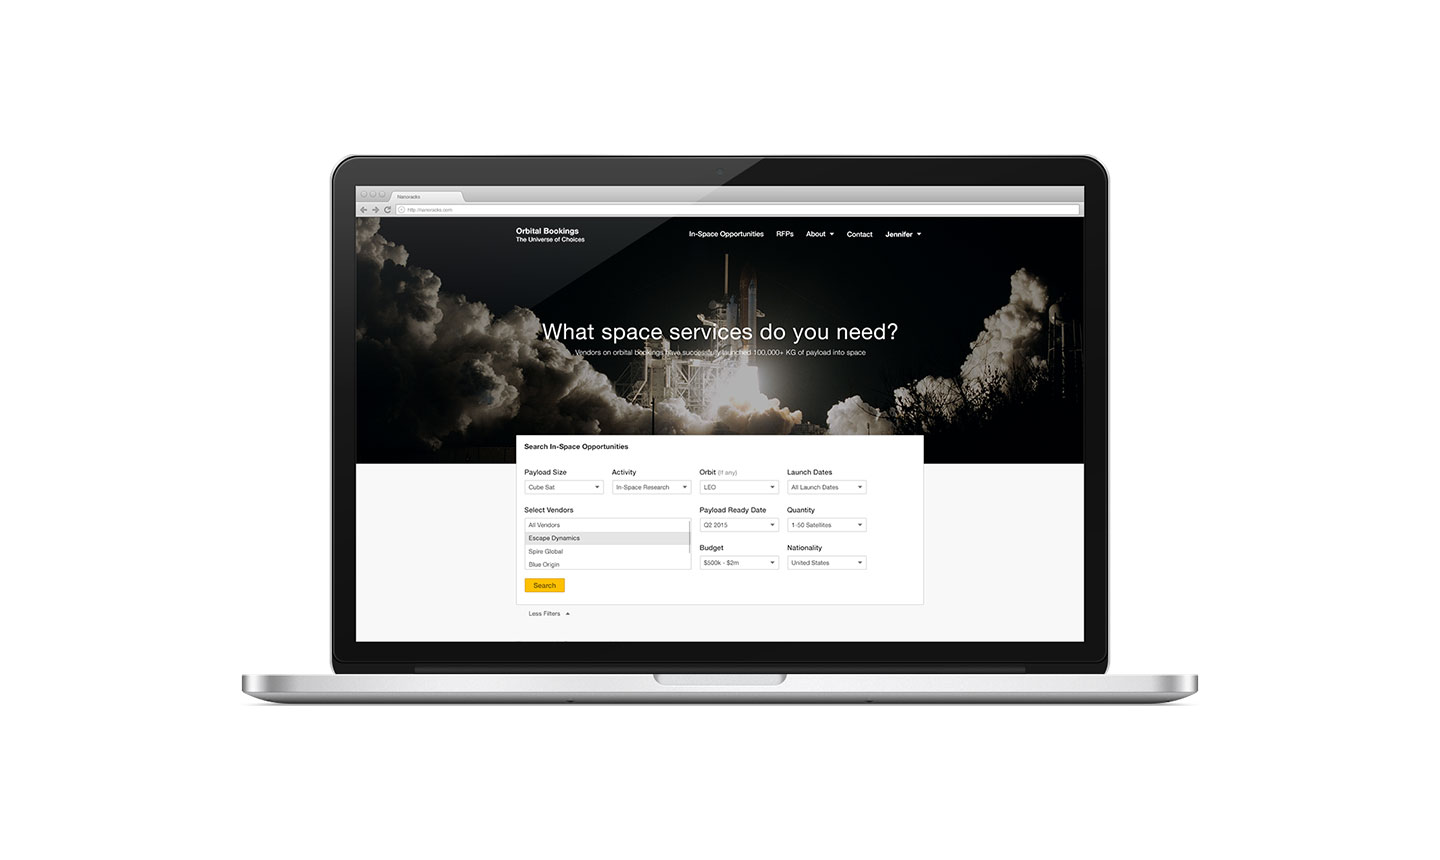 Nanoracks Web App